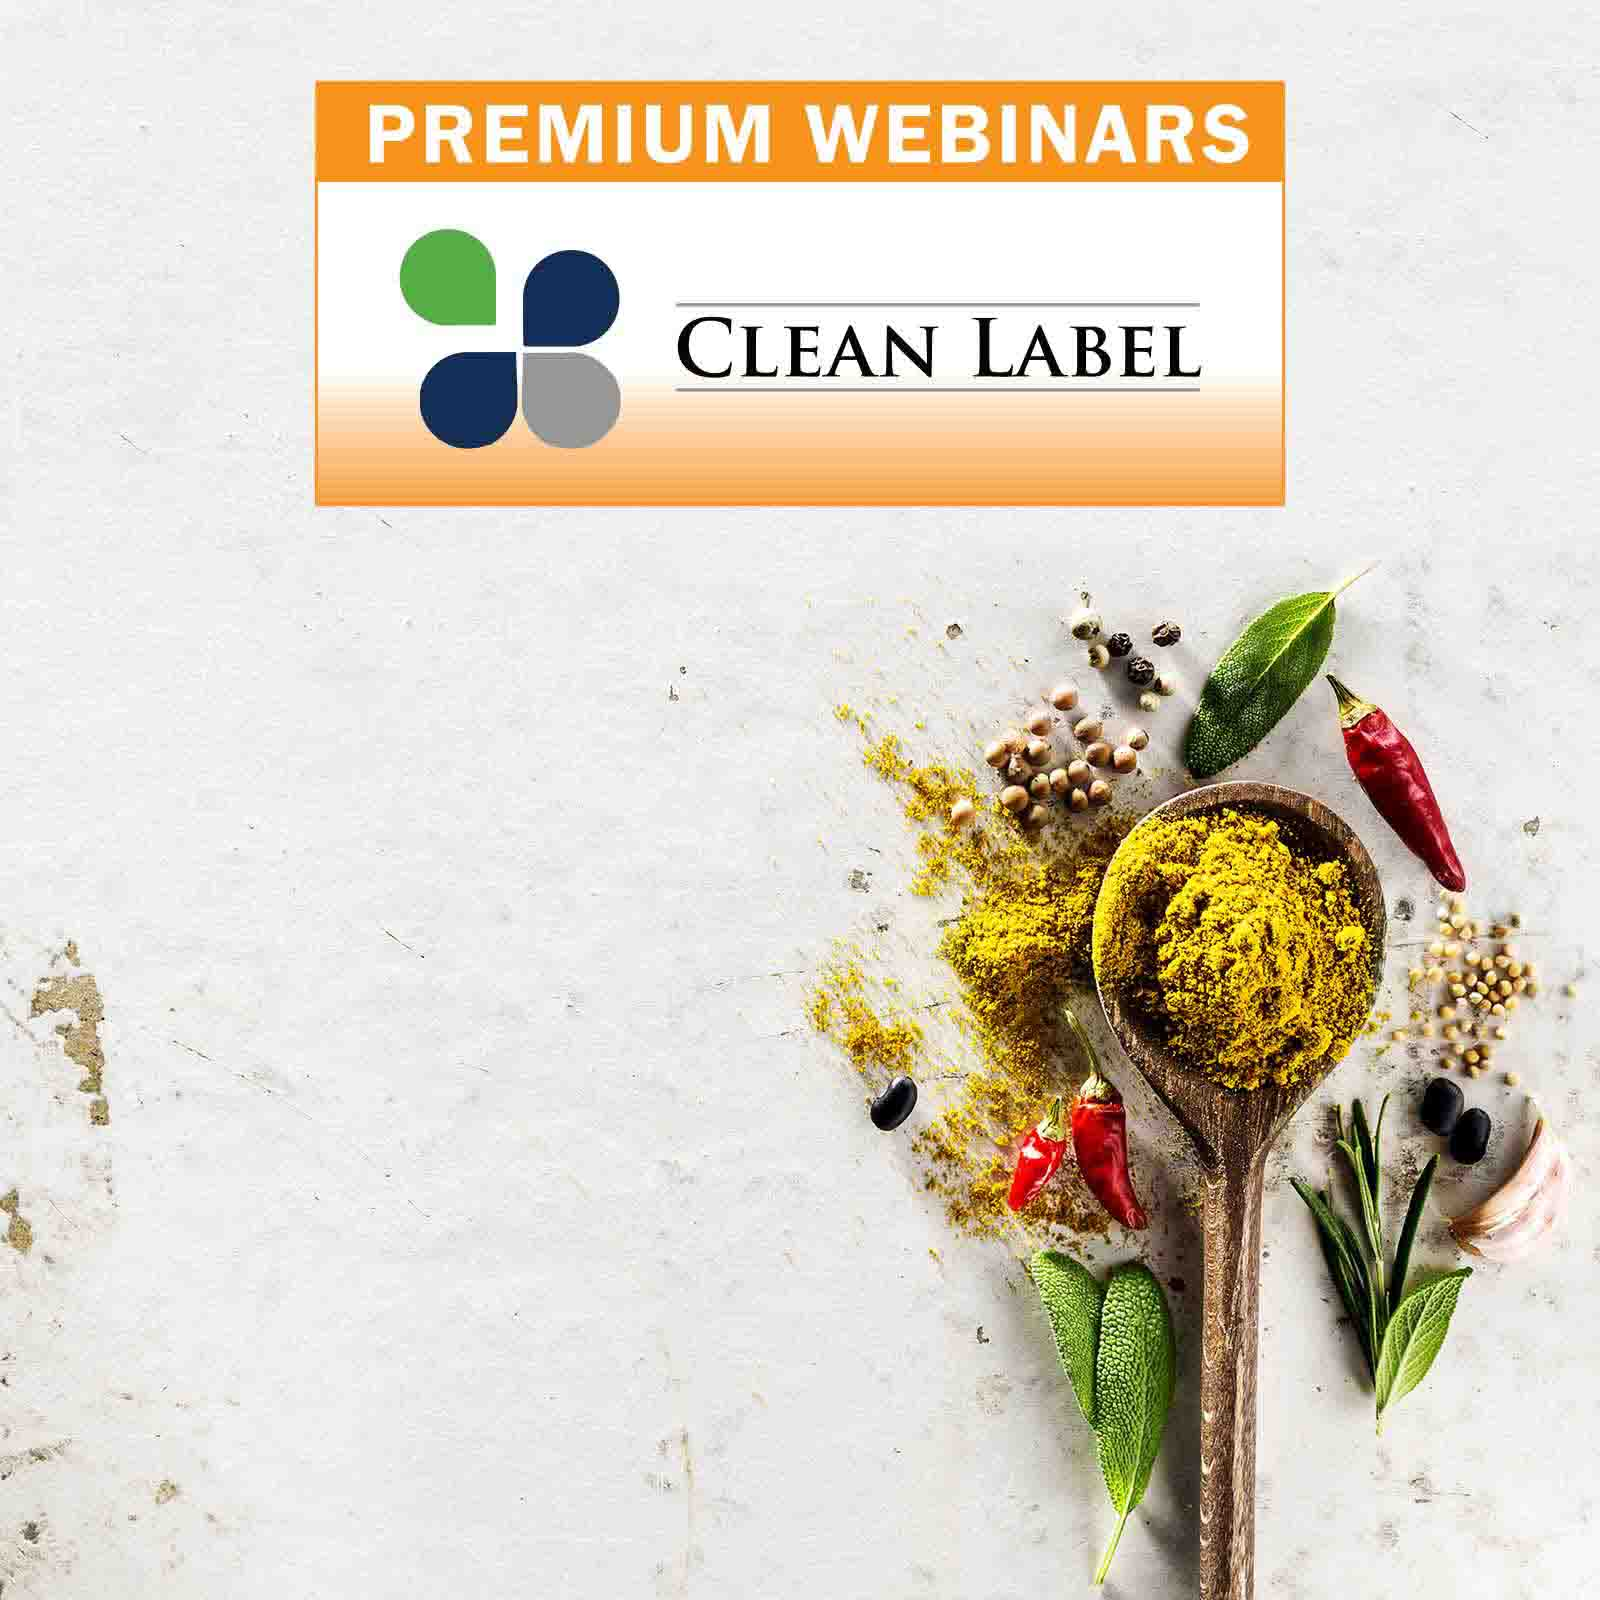 image for the 2021 Clean Label Premium Webinar on the webinar listing page